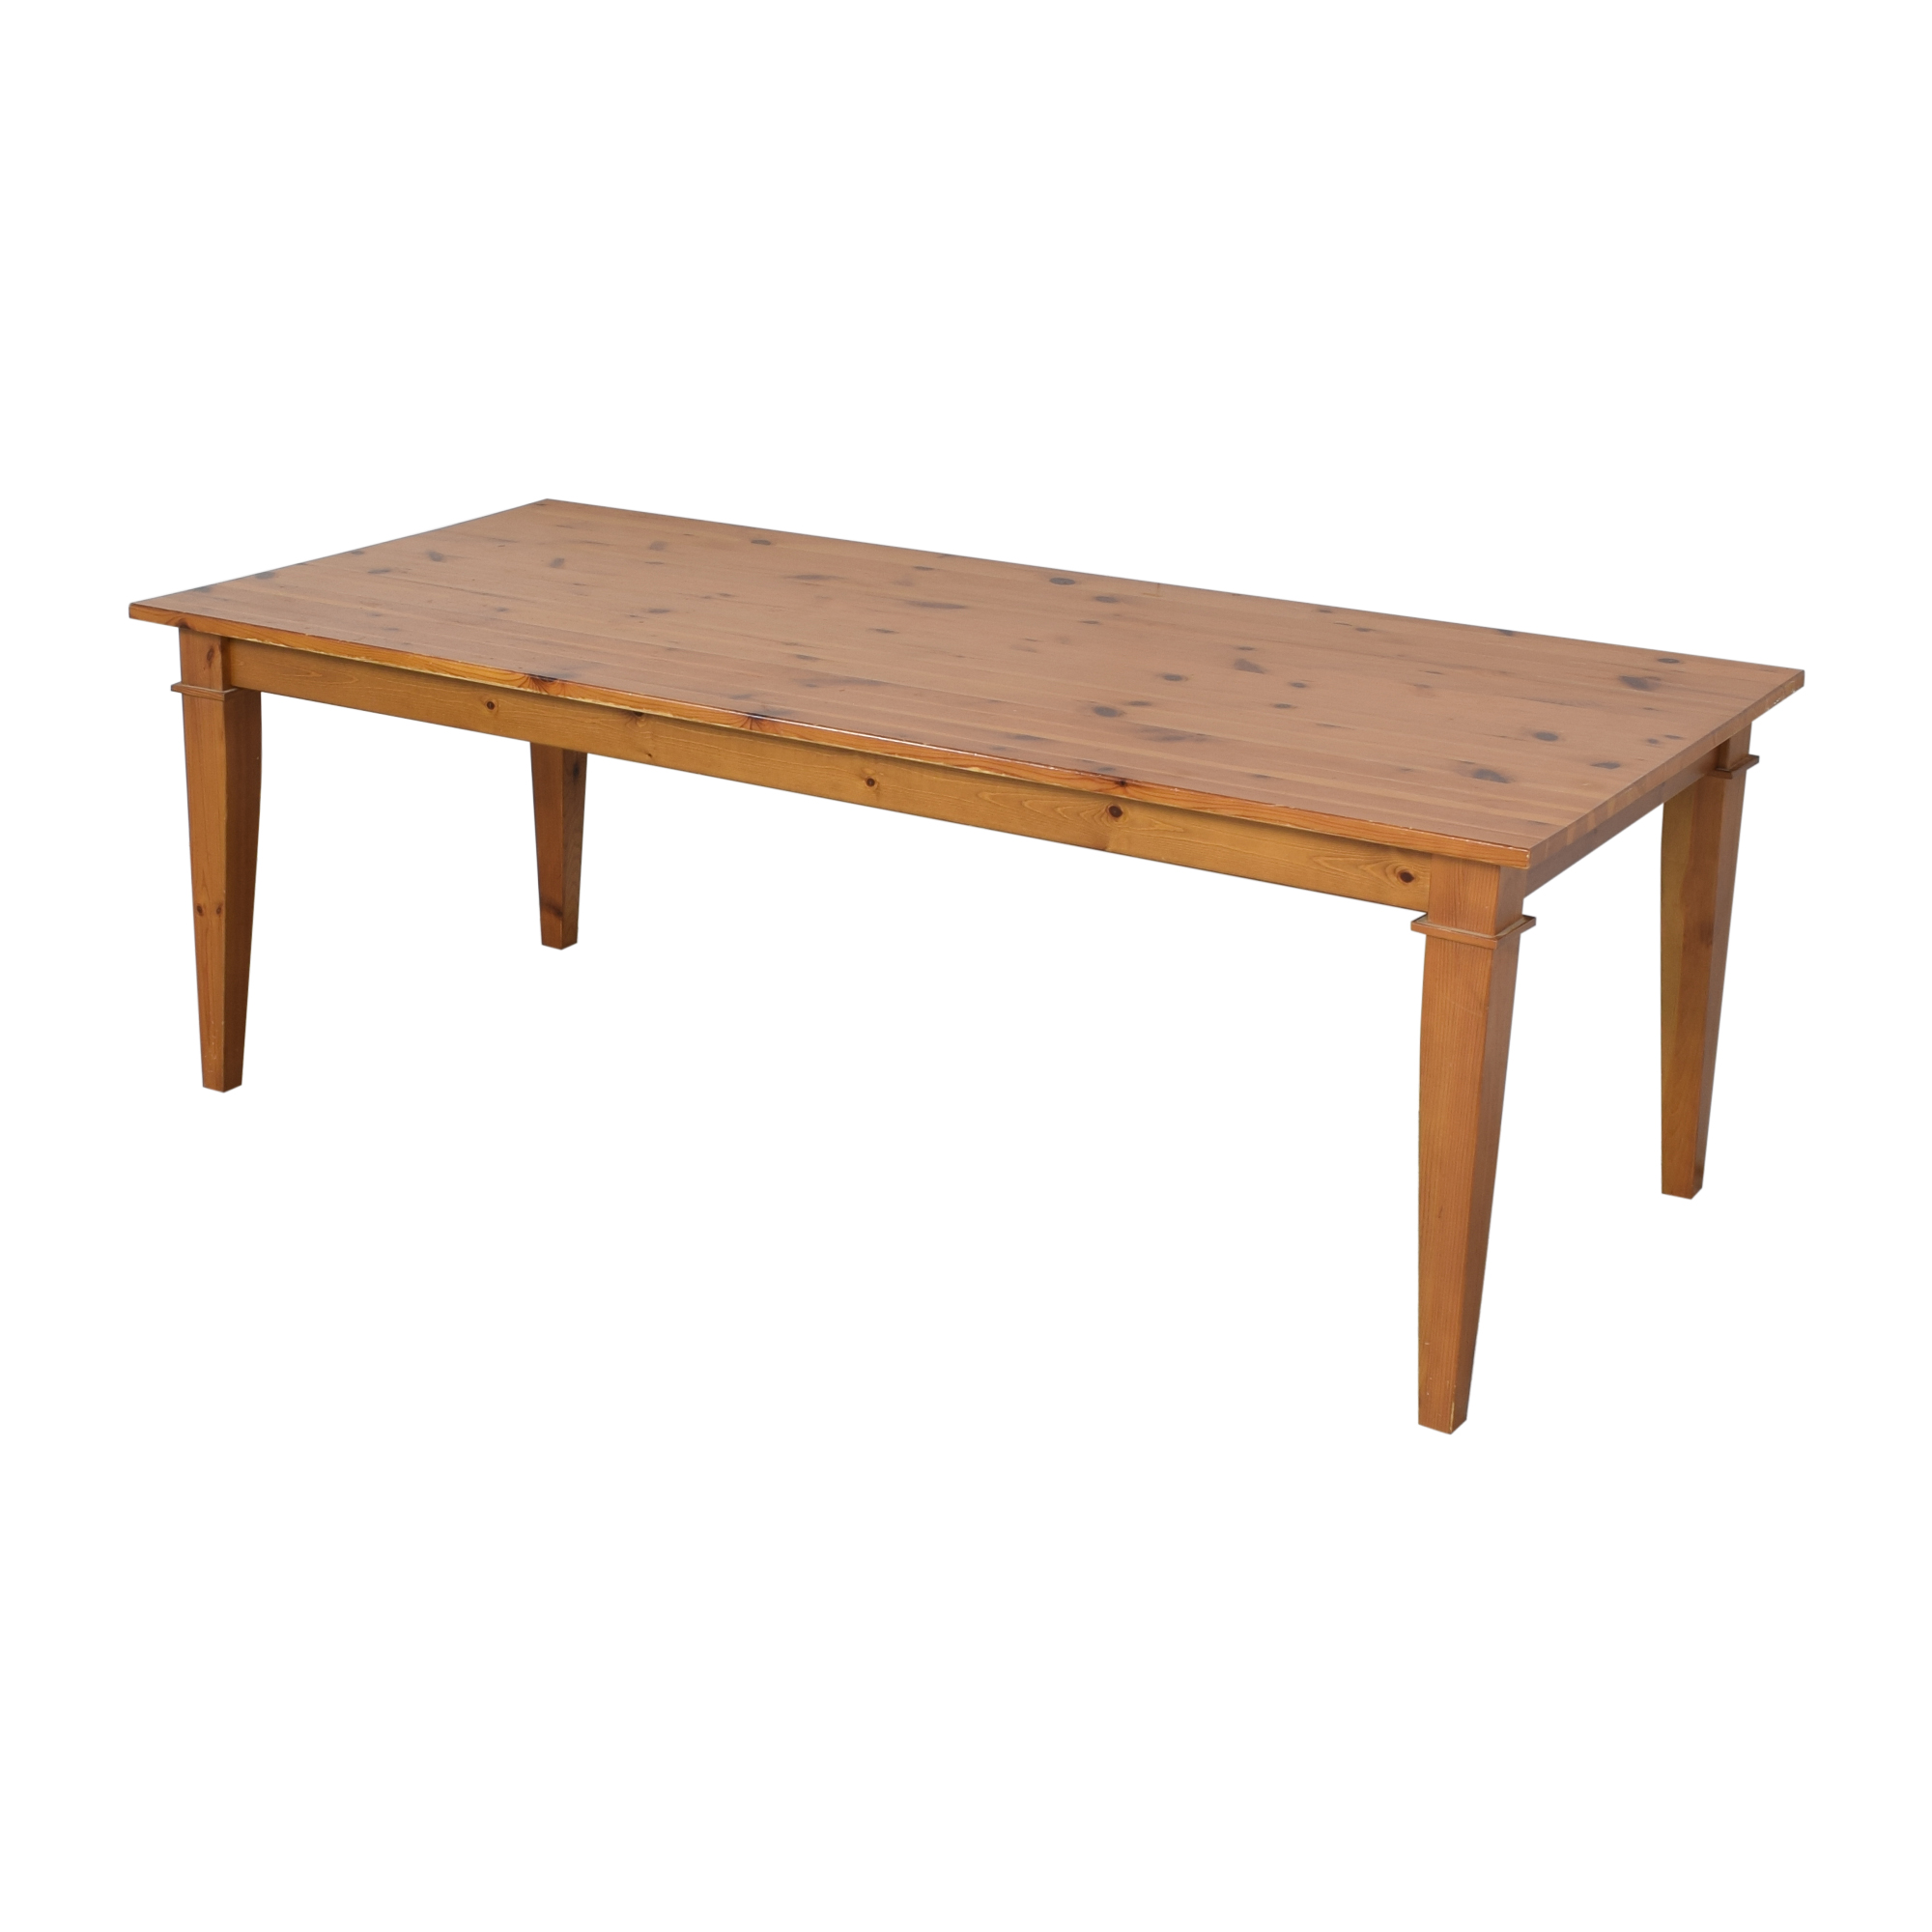 shop Pottery Barn Pottery Barn Rectangular Dining Table online